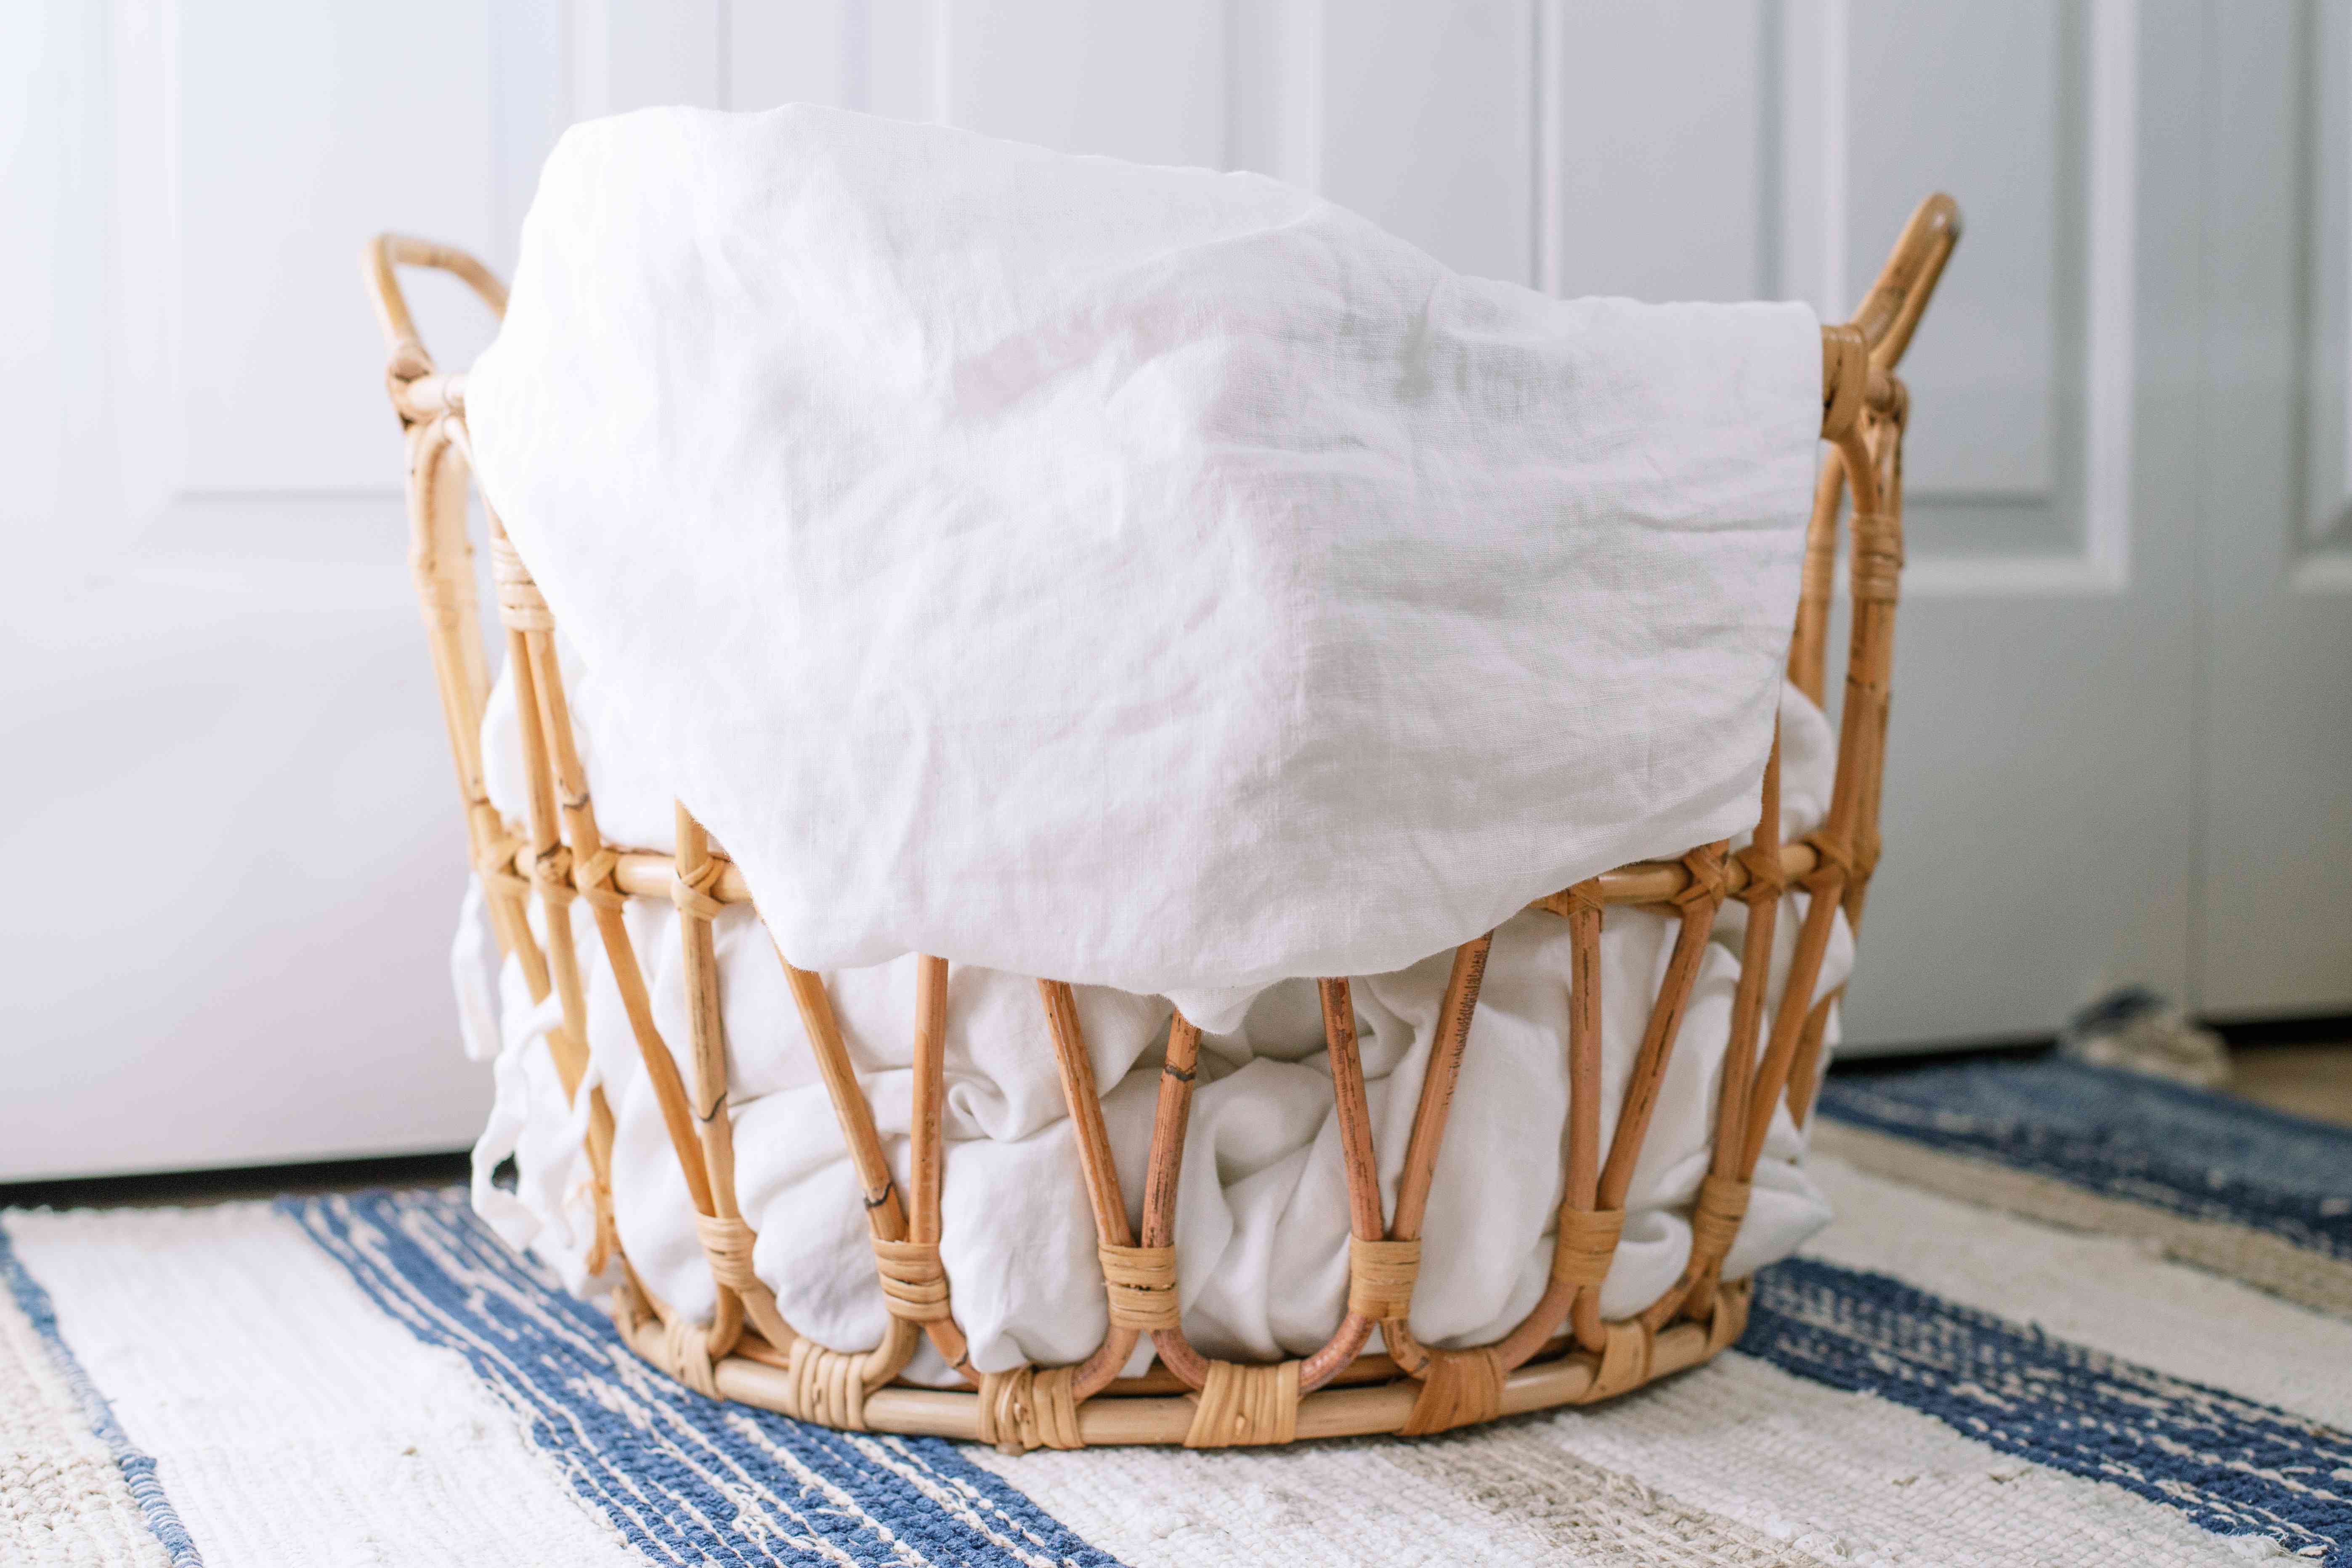 Basket with laundry sorted by color